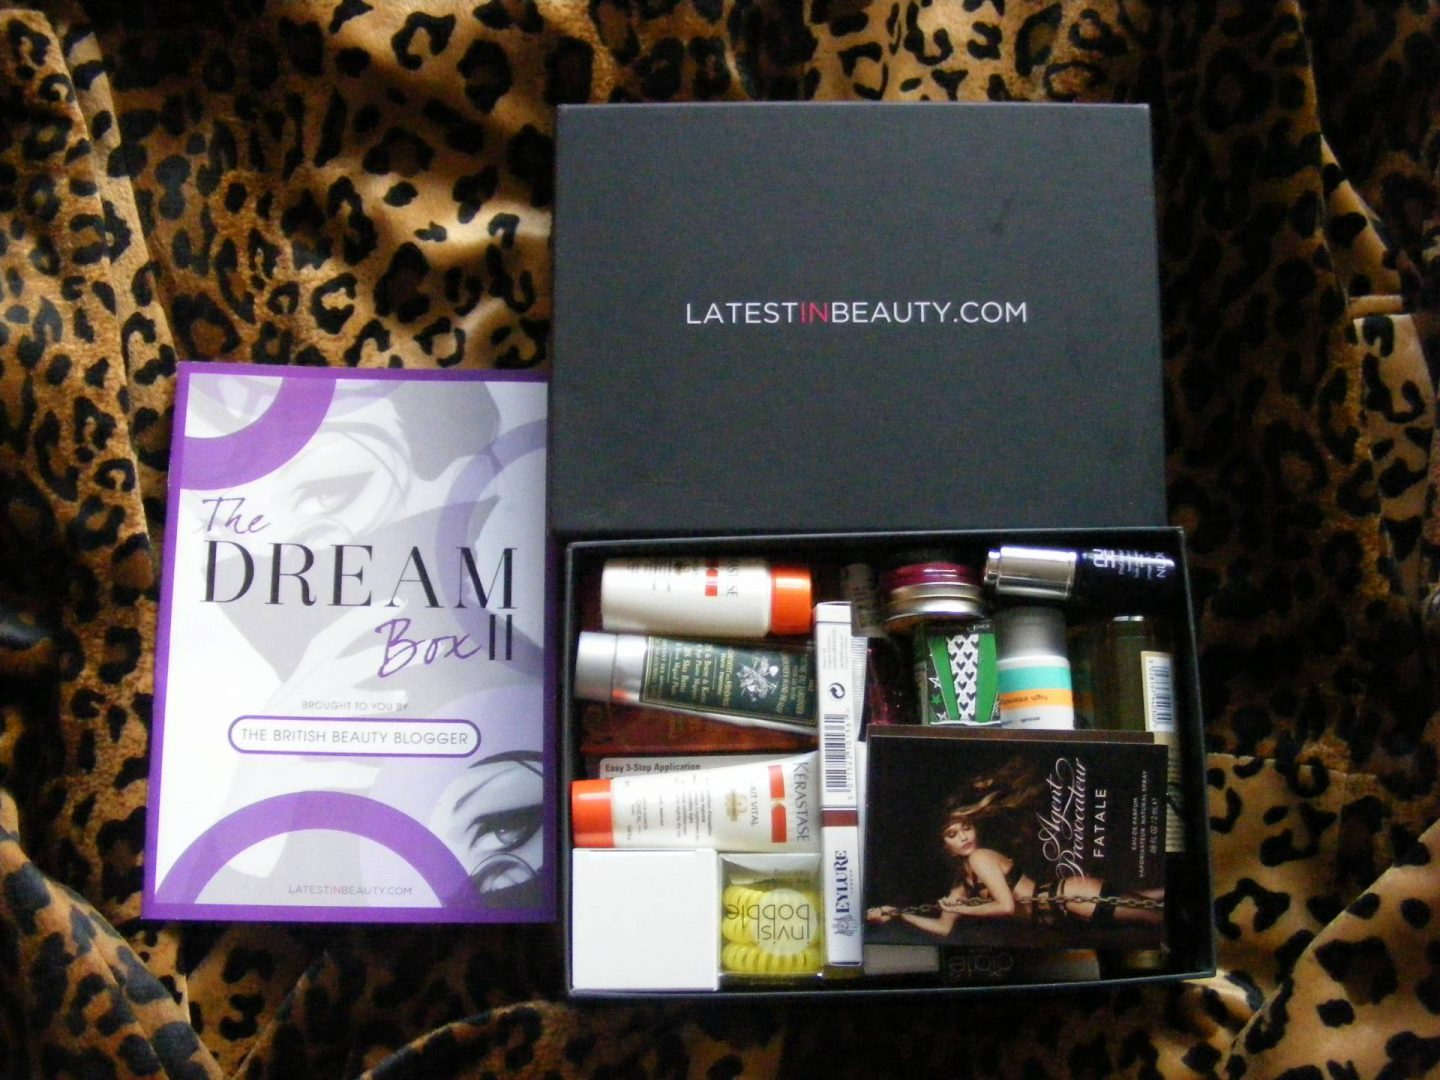 Latest in Beauty: British Beauty Blogger Dream Box II